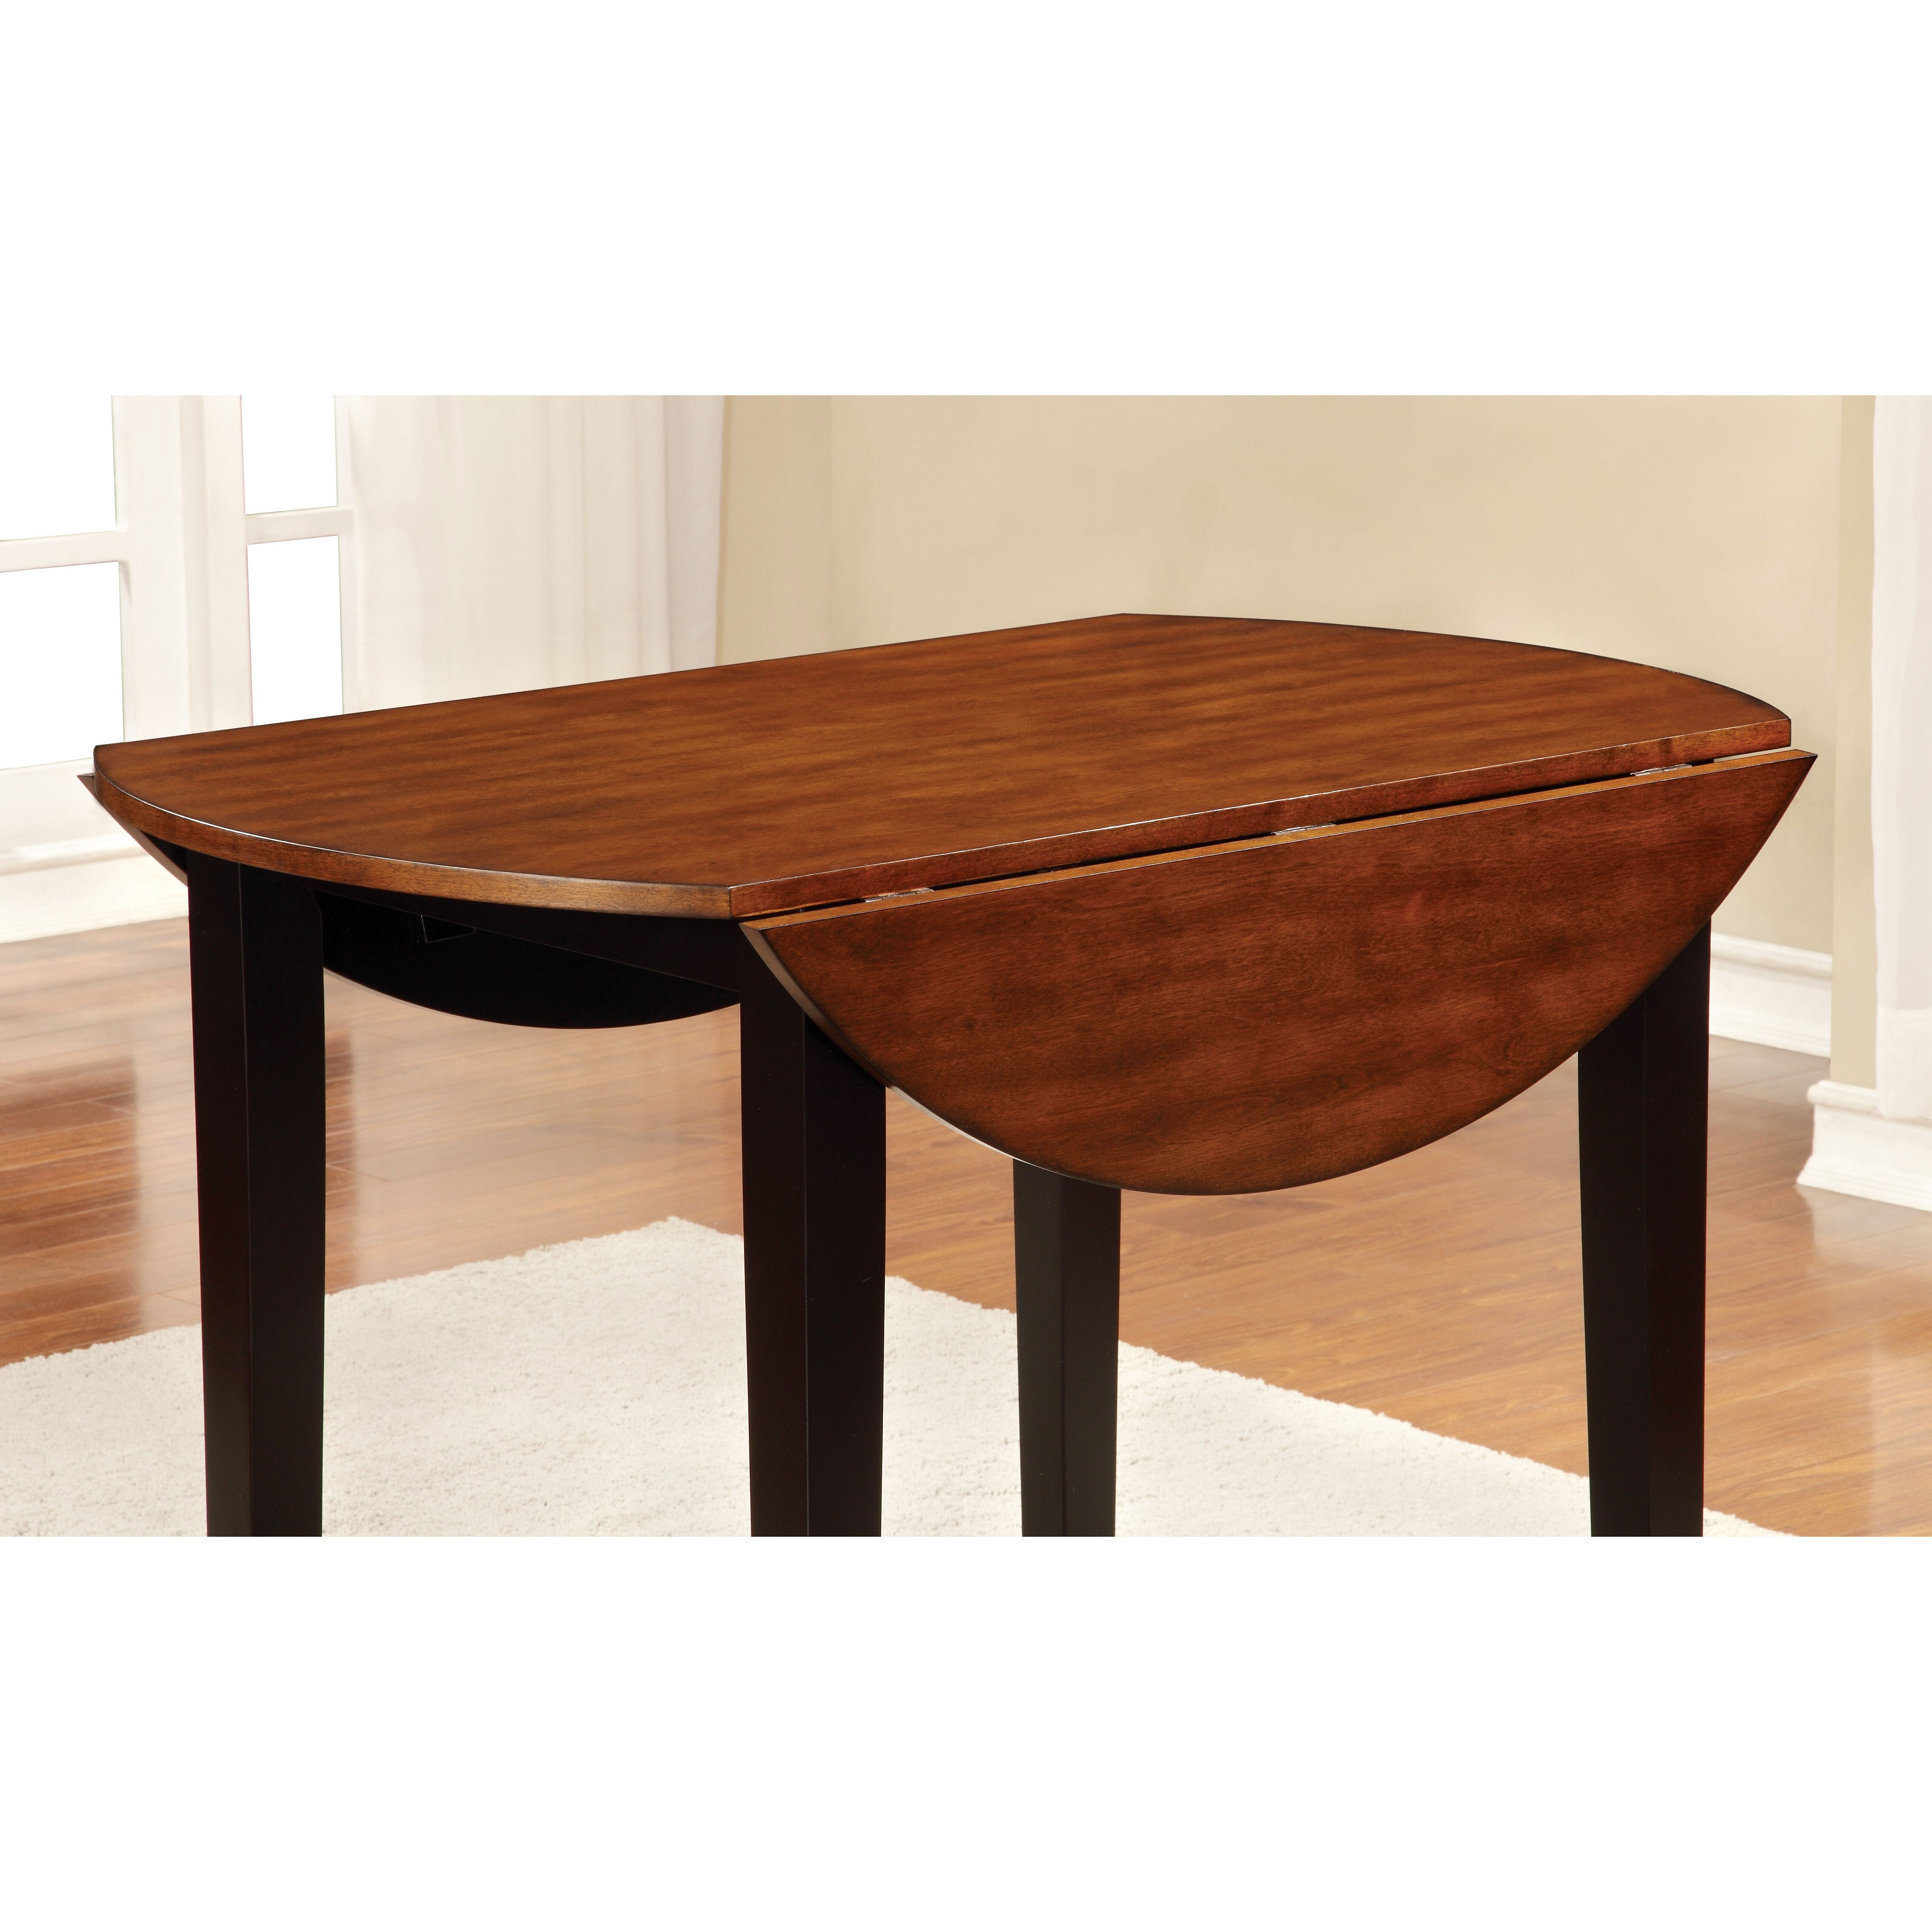 Althea Dining Table Wayfair : Althea Transitional Round Table from www.wayfair.com size 4541 x 4541 jpeg 1597kB